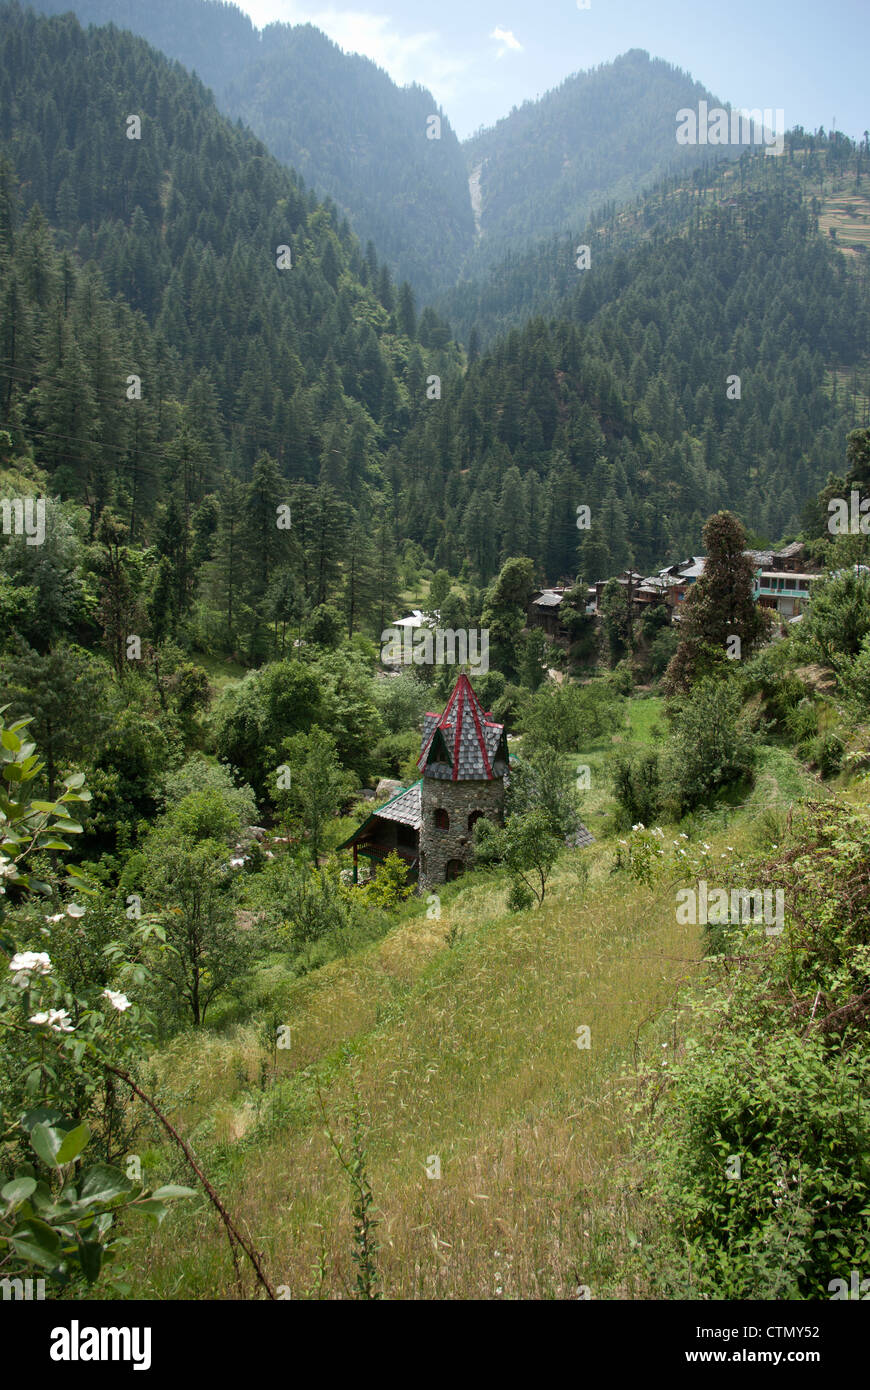 House in the Tirthan Valley, Himachal Pradesh state, India - Stock Image